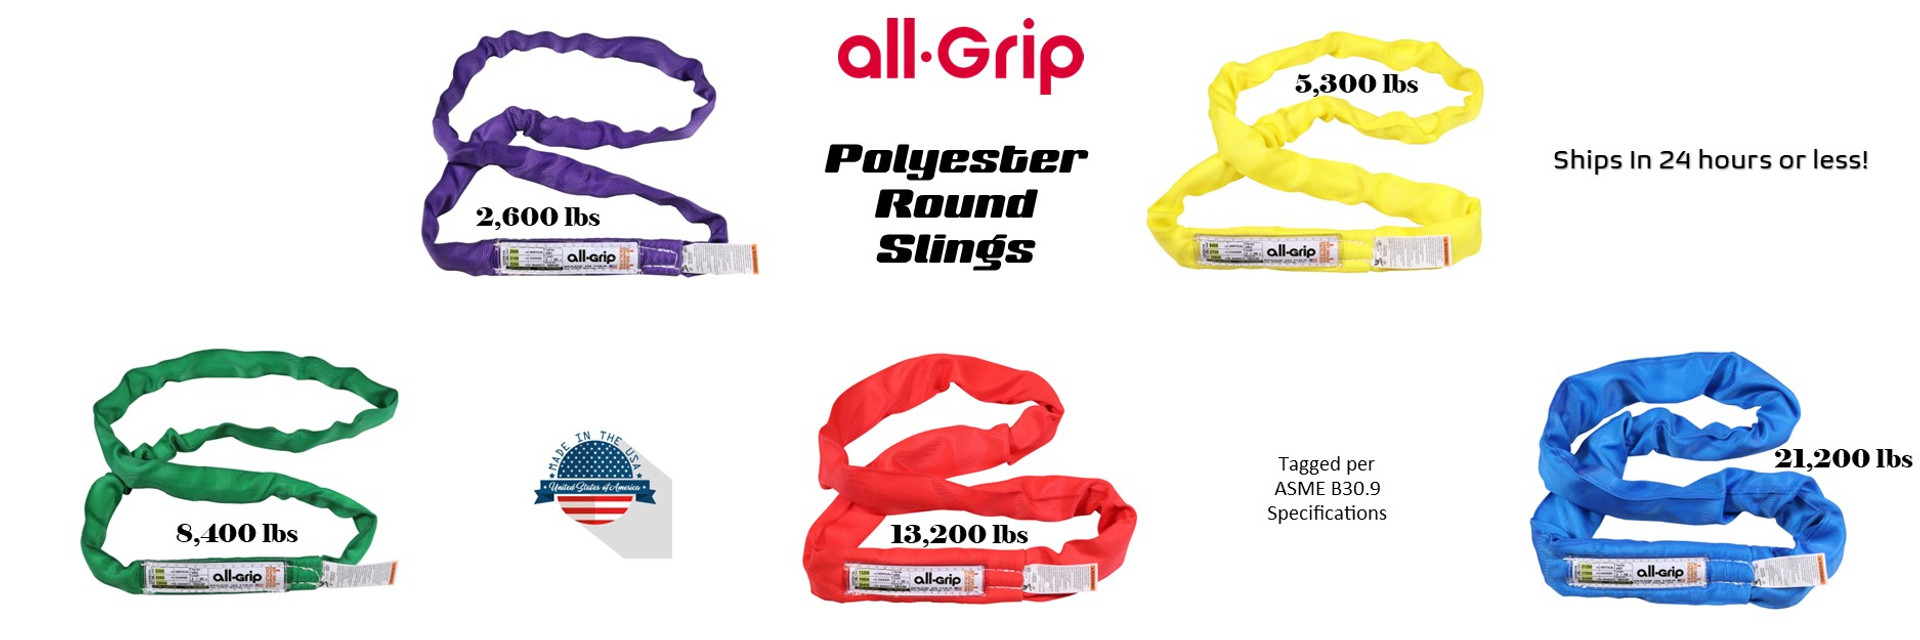 all-Grip Polyester Round Slings